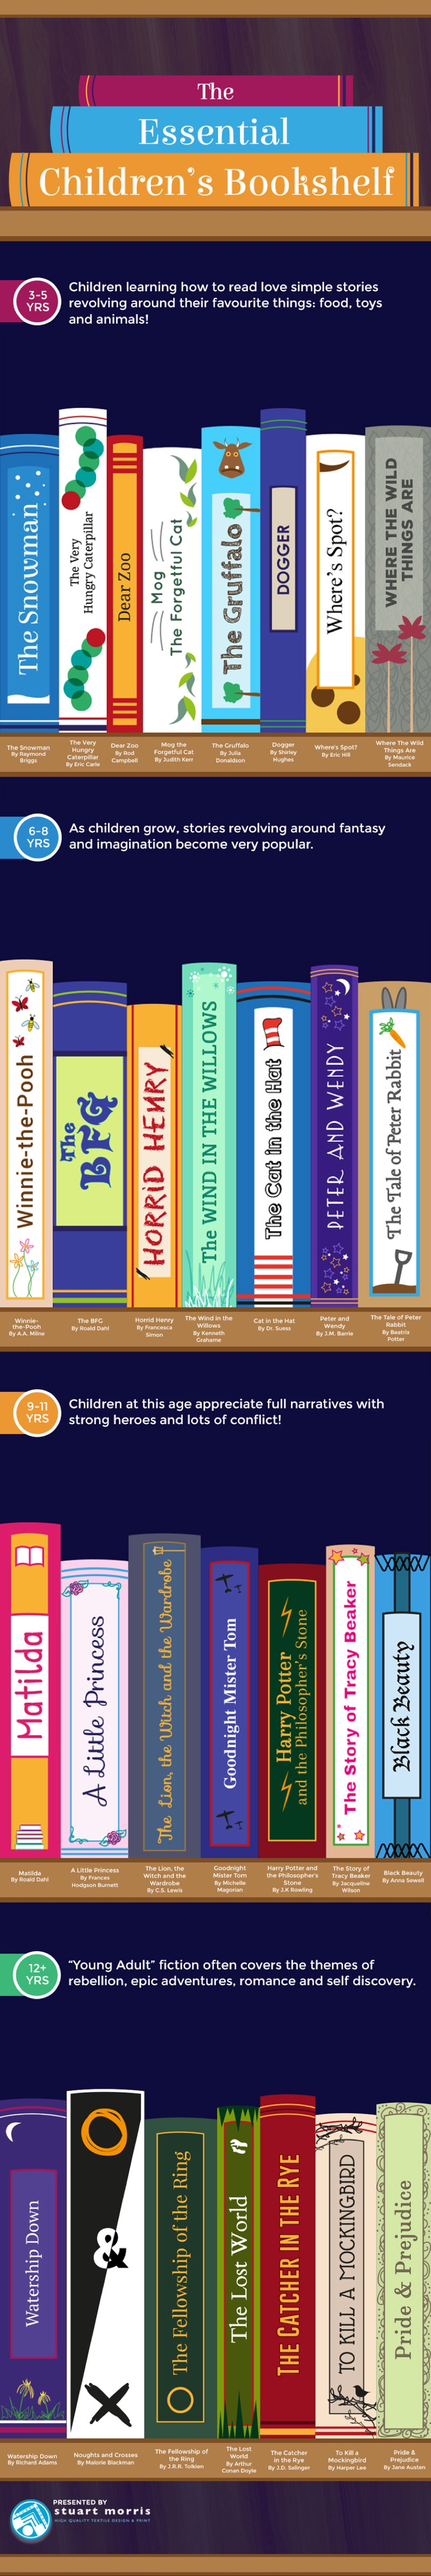 The essential children's bookshelf #infographic